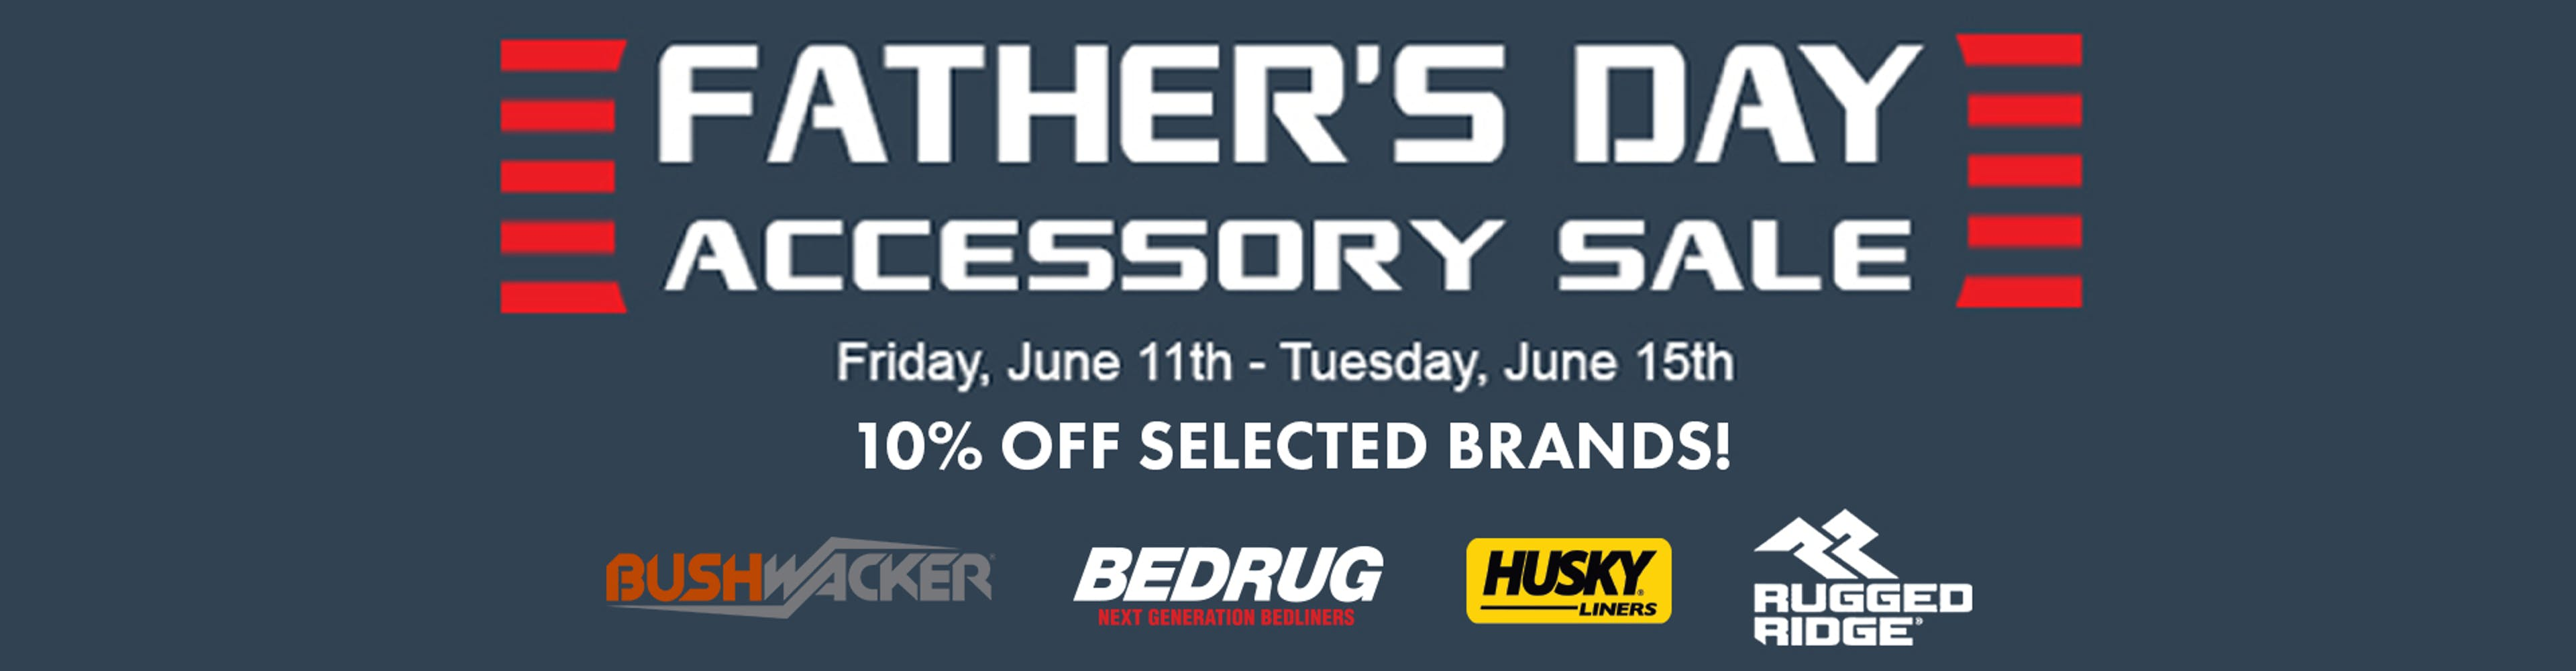 Father's Day accessory sale